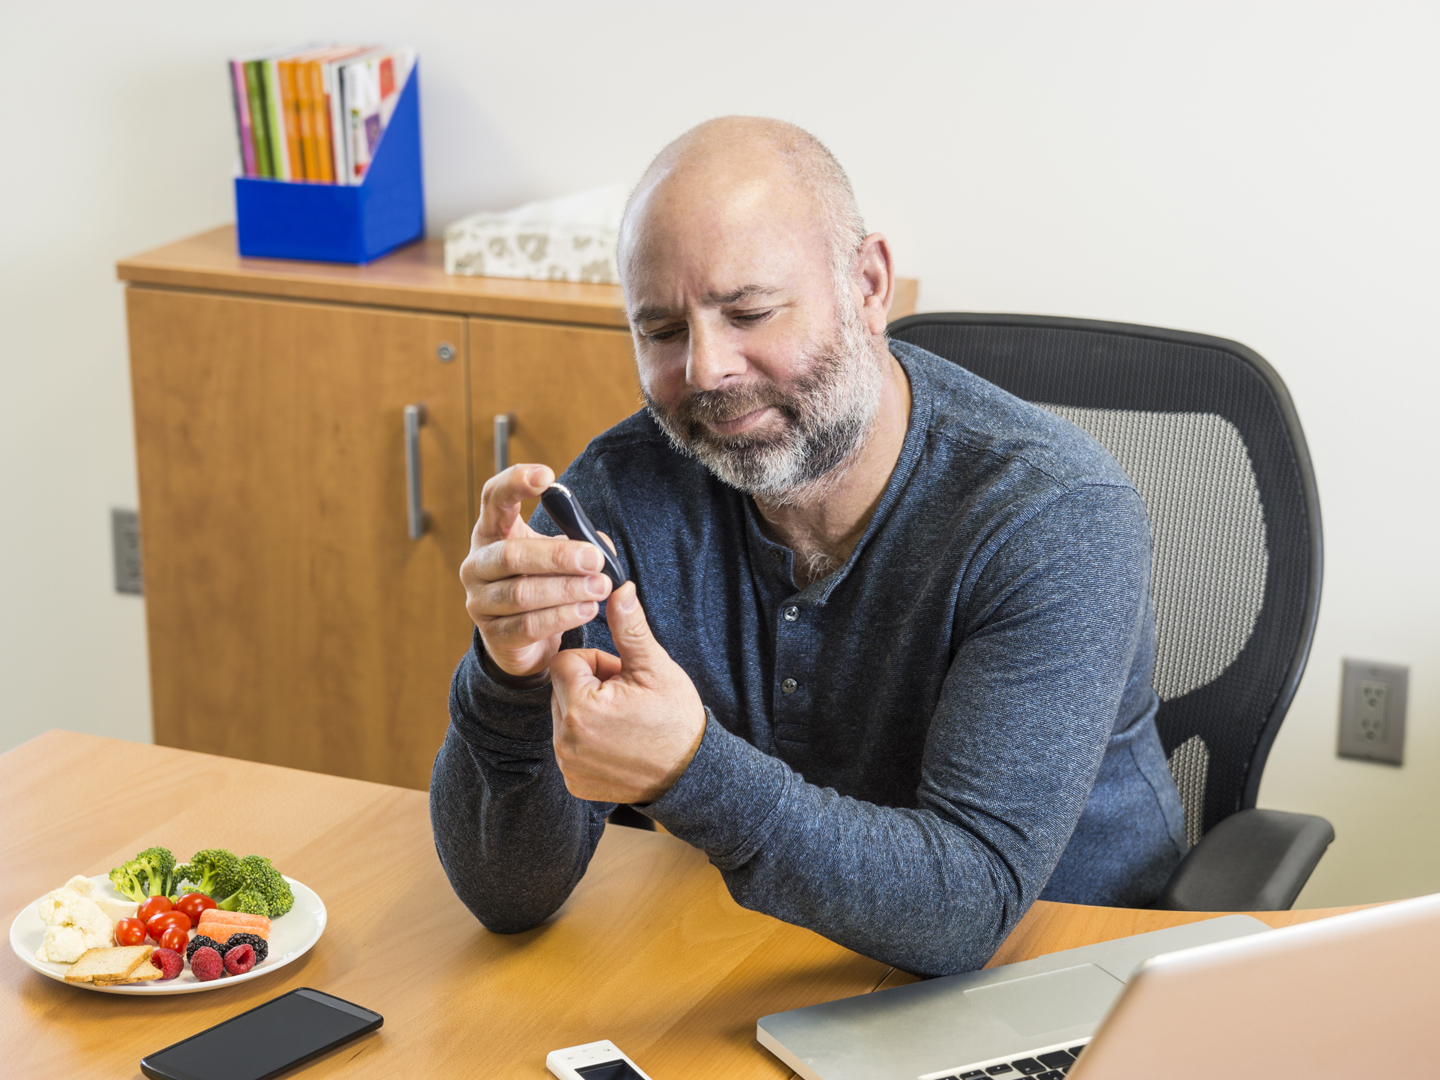 A diabetic man at work testing his blood to monitor his blood glucose levels so he can manage his diabetes.